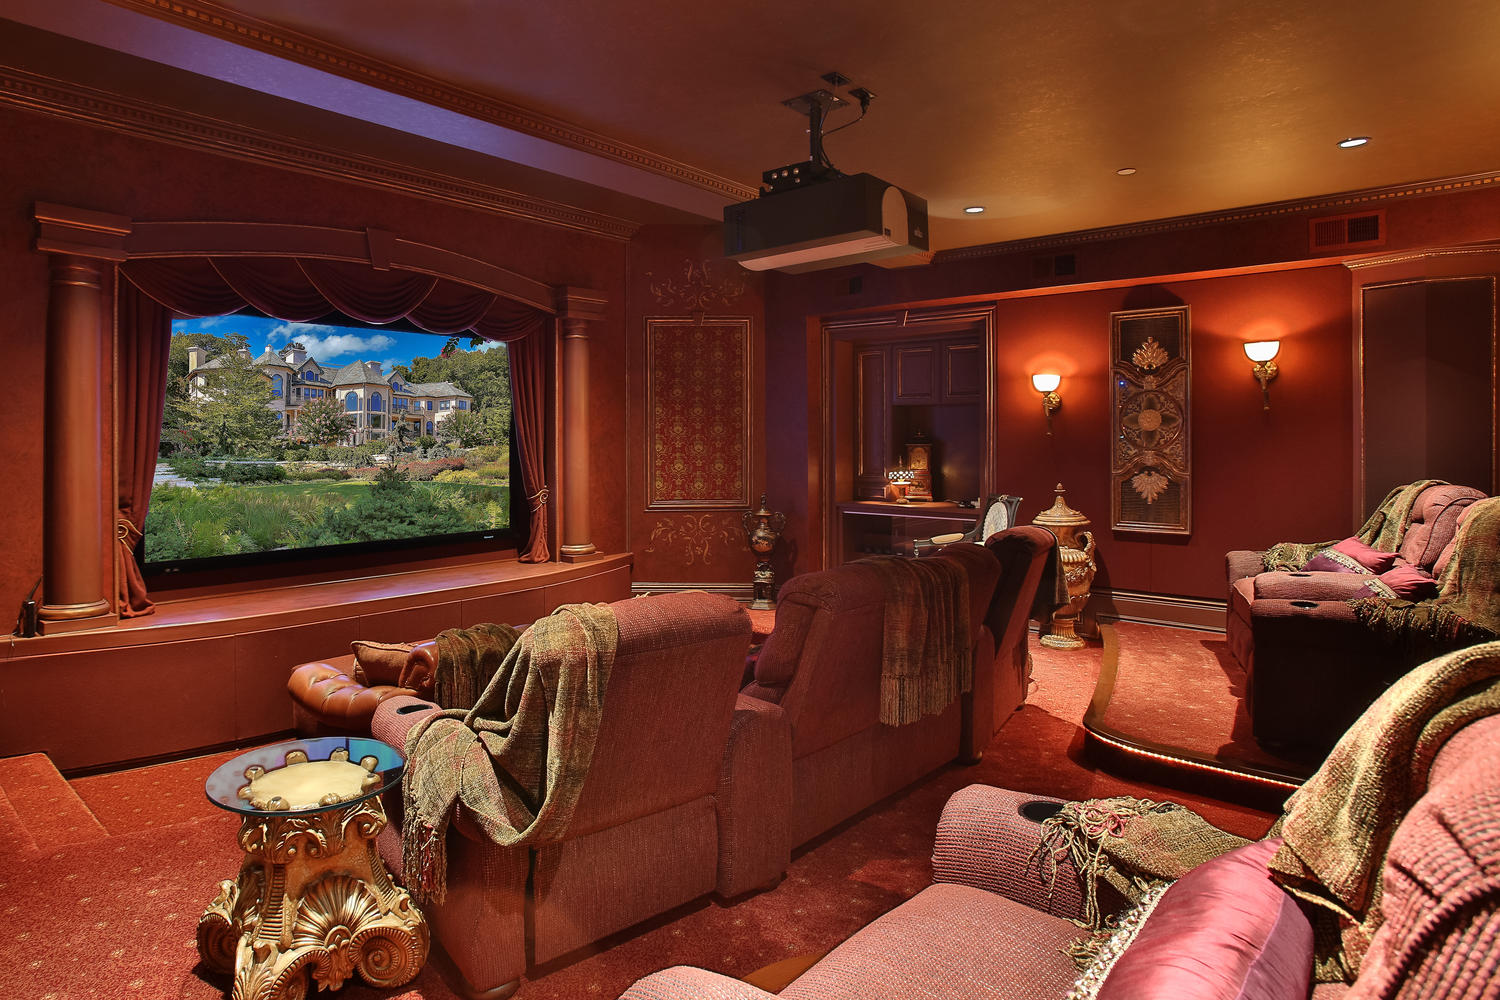 A palatial 20,000-square-foot residence in Middletown, New Jersey, Terraces on the Navesink River impresses with its opulent home theater and adjacent bar and lounge, which provides a luxurious intermission between plays.